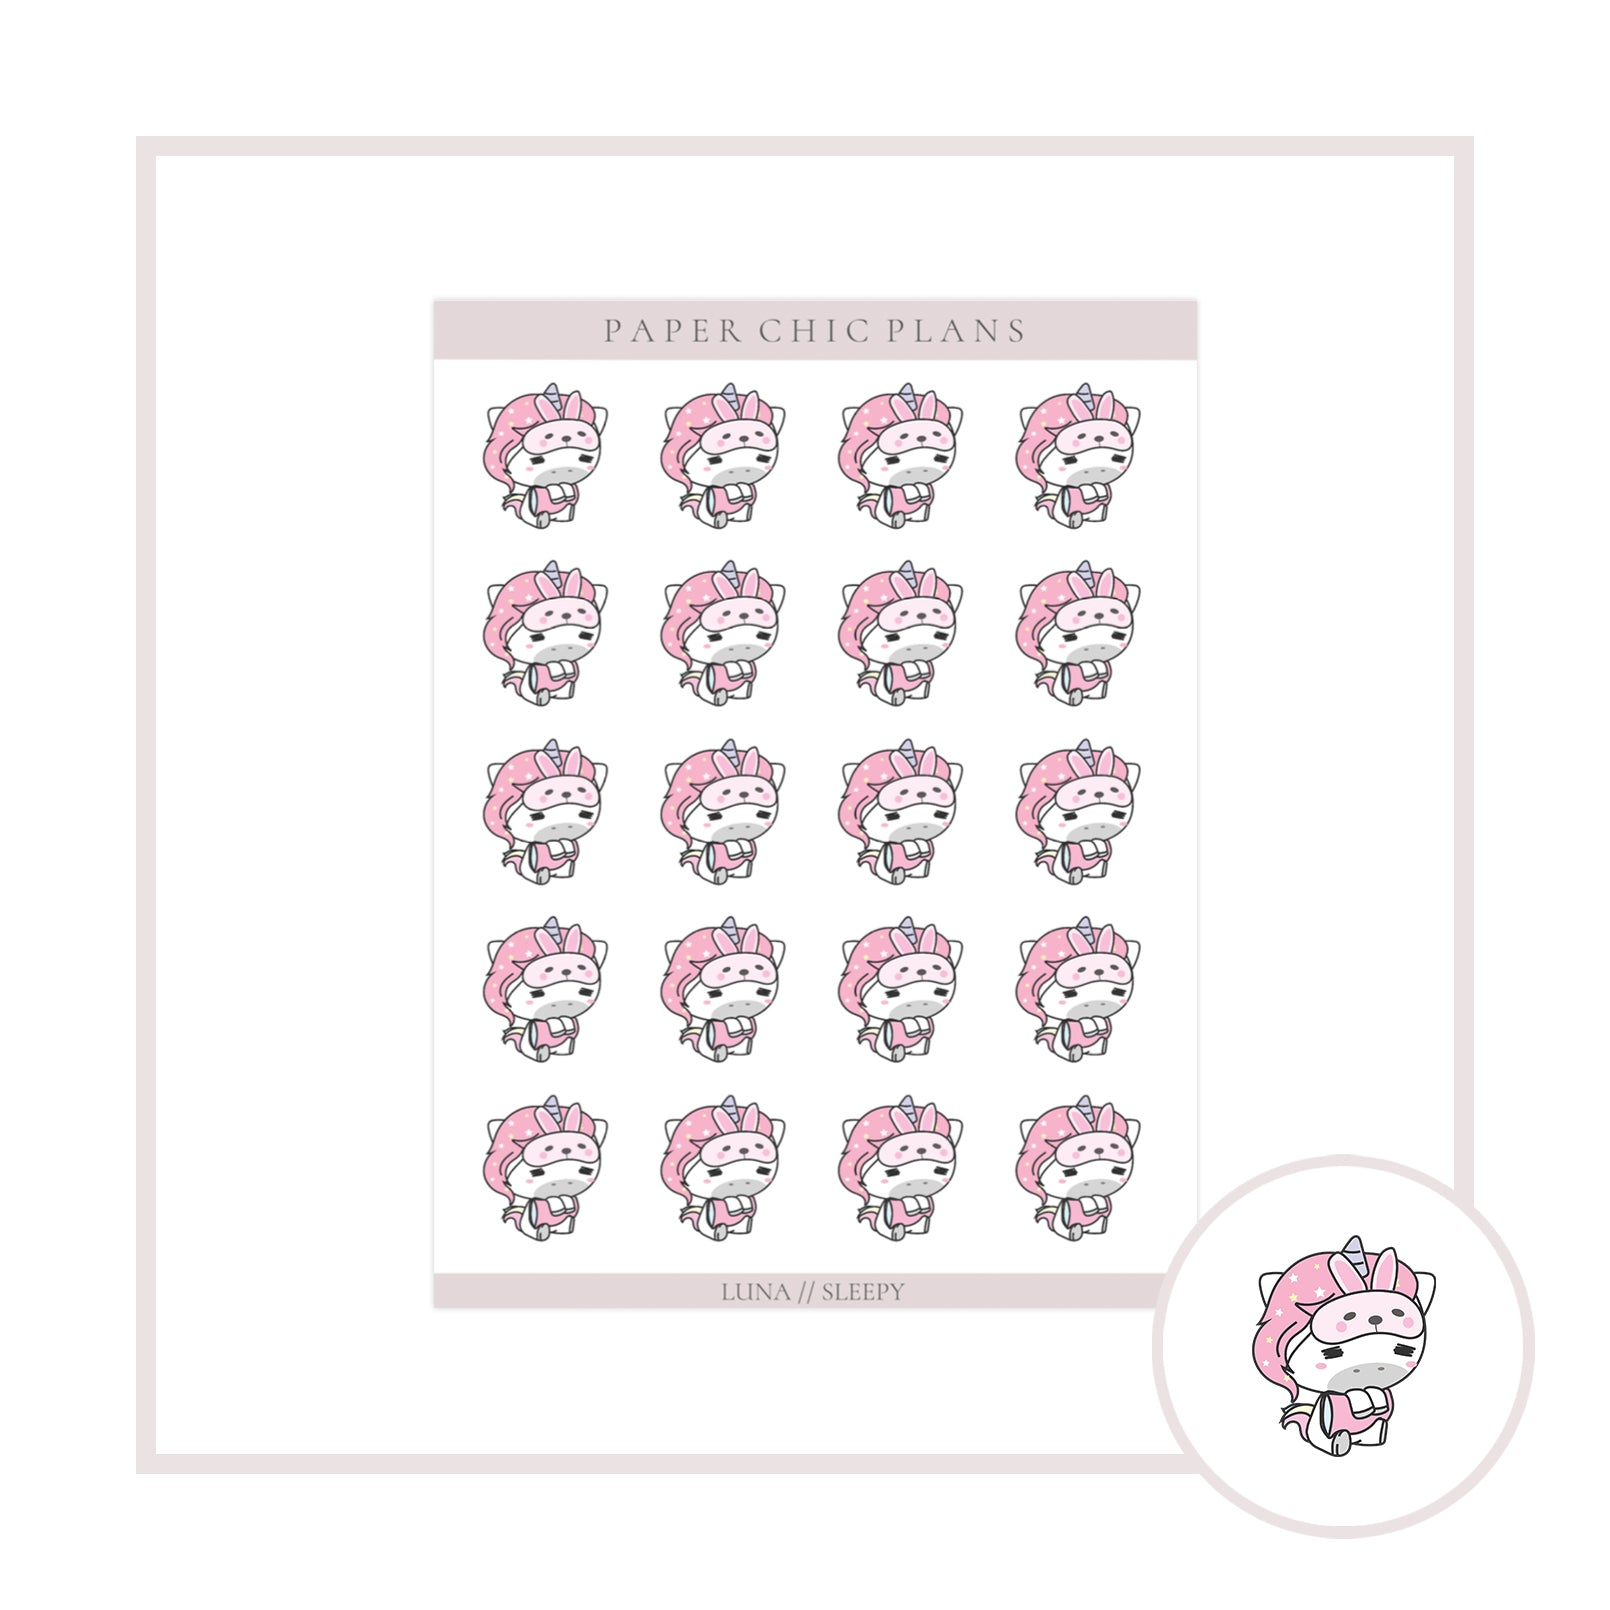 Sleepy // Luna Collection - Paper Chic Plans